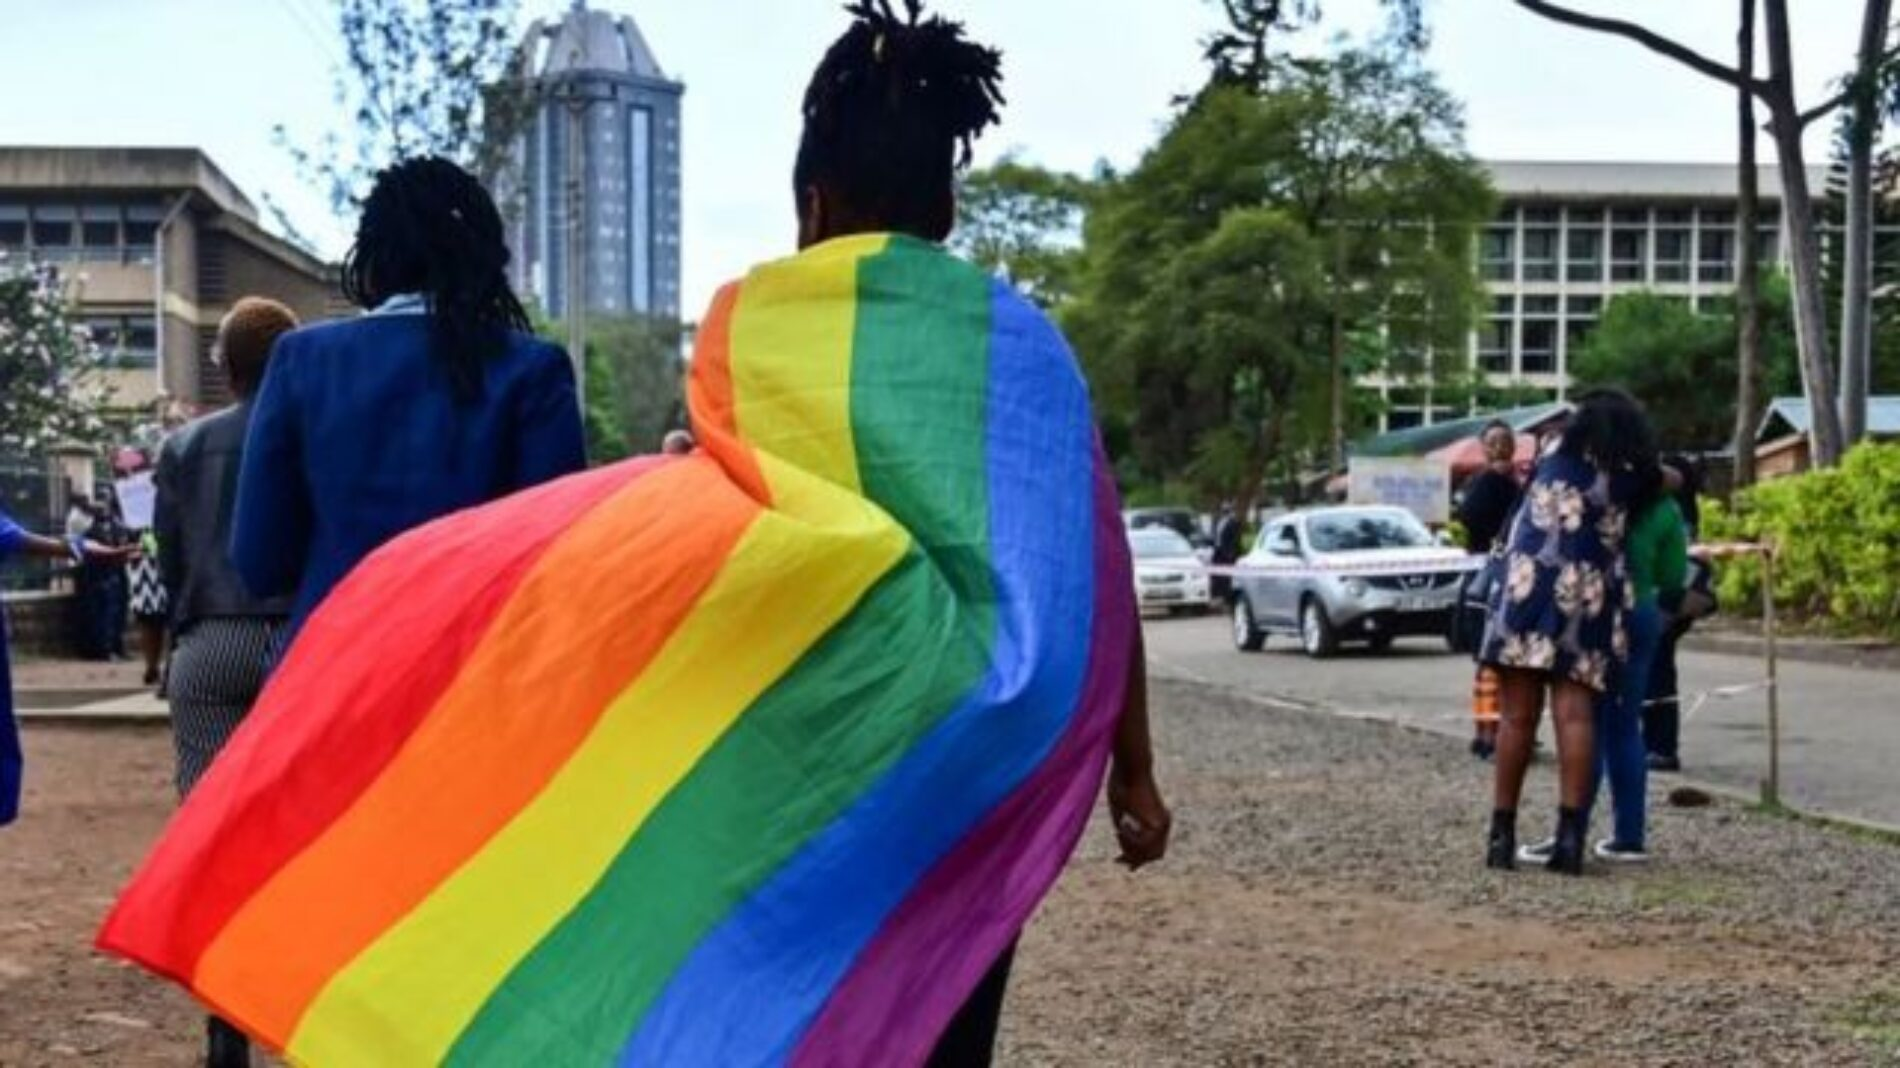 Some Ghanaian Lawmakers Want to Criminalize LGBTQ+ Advocacy